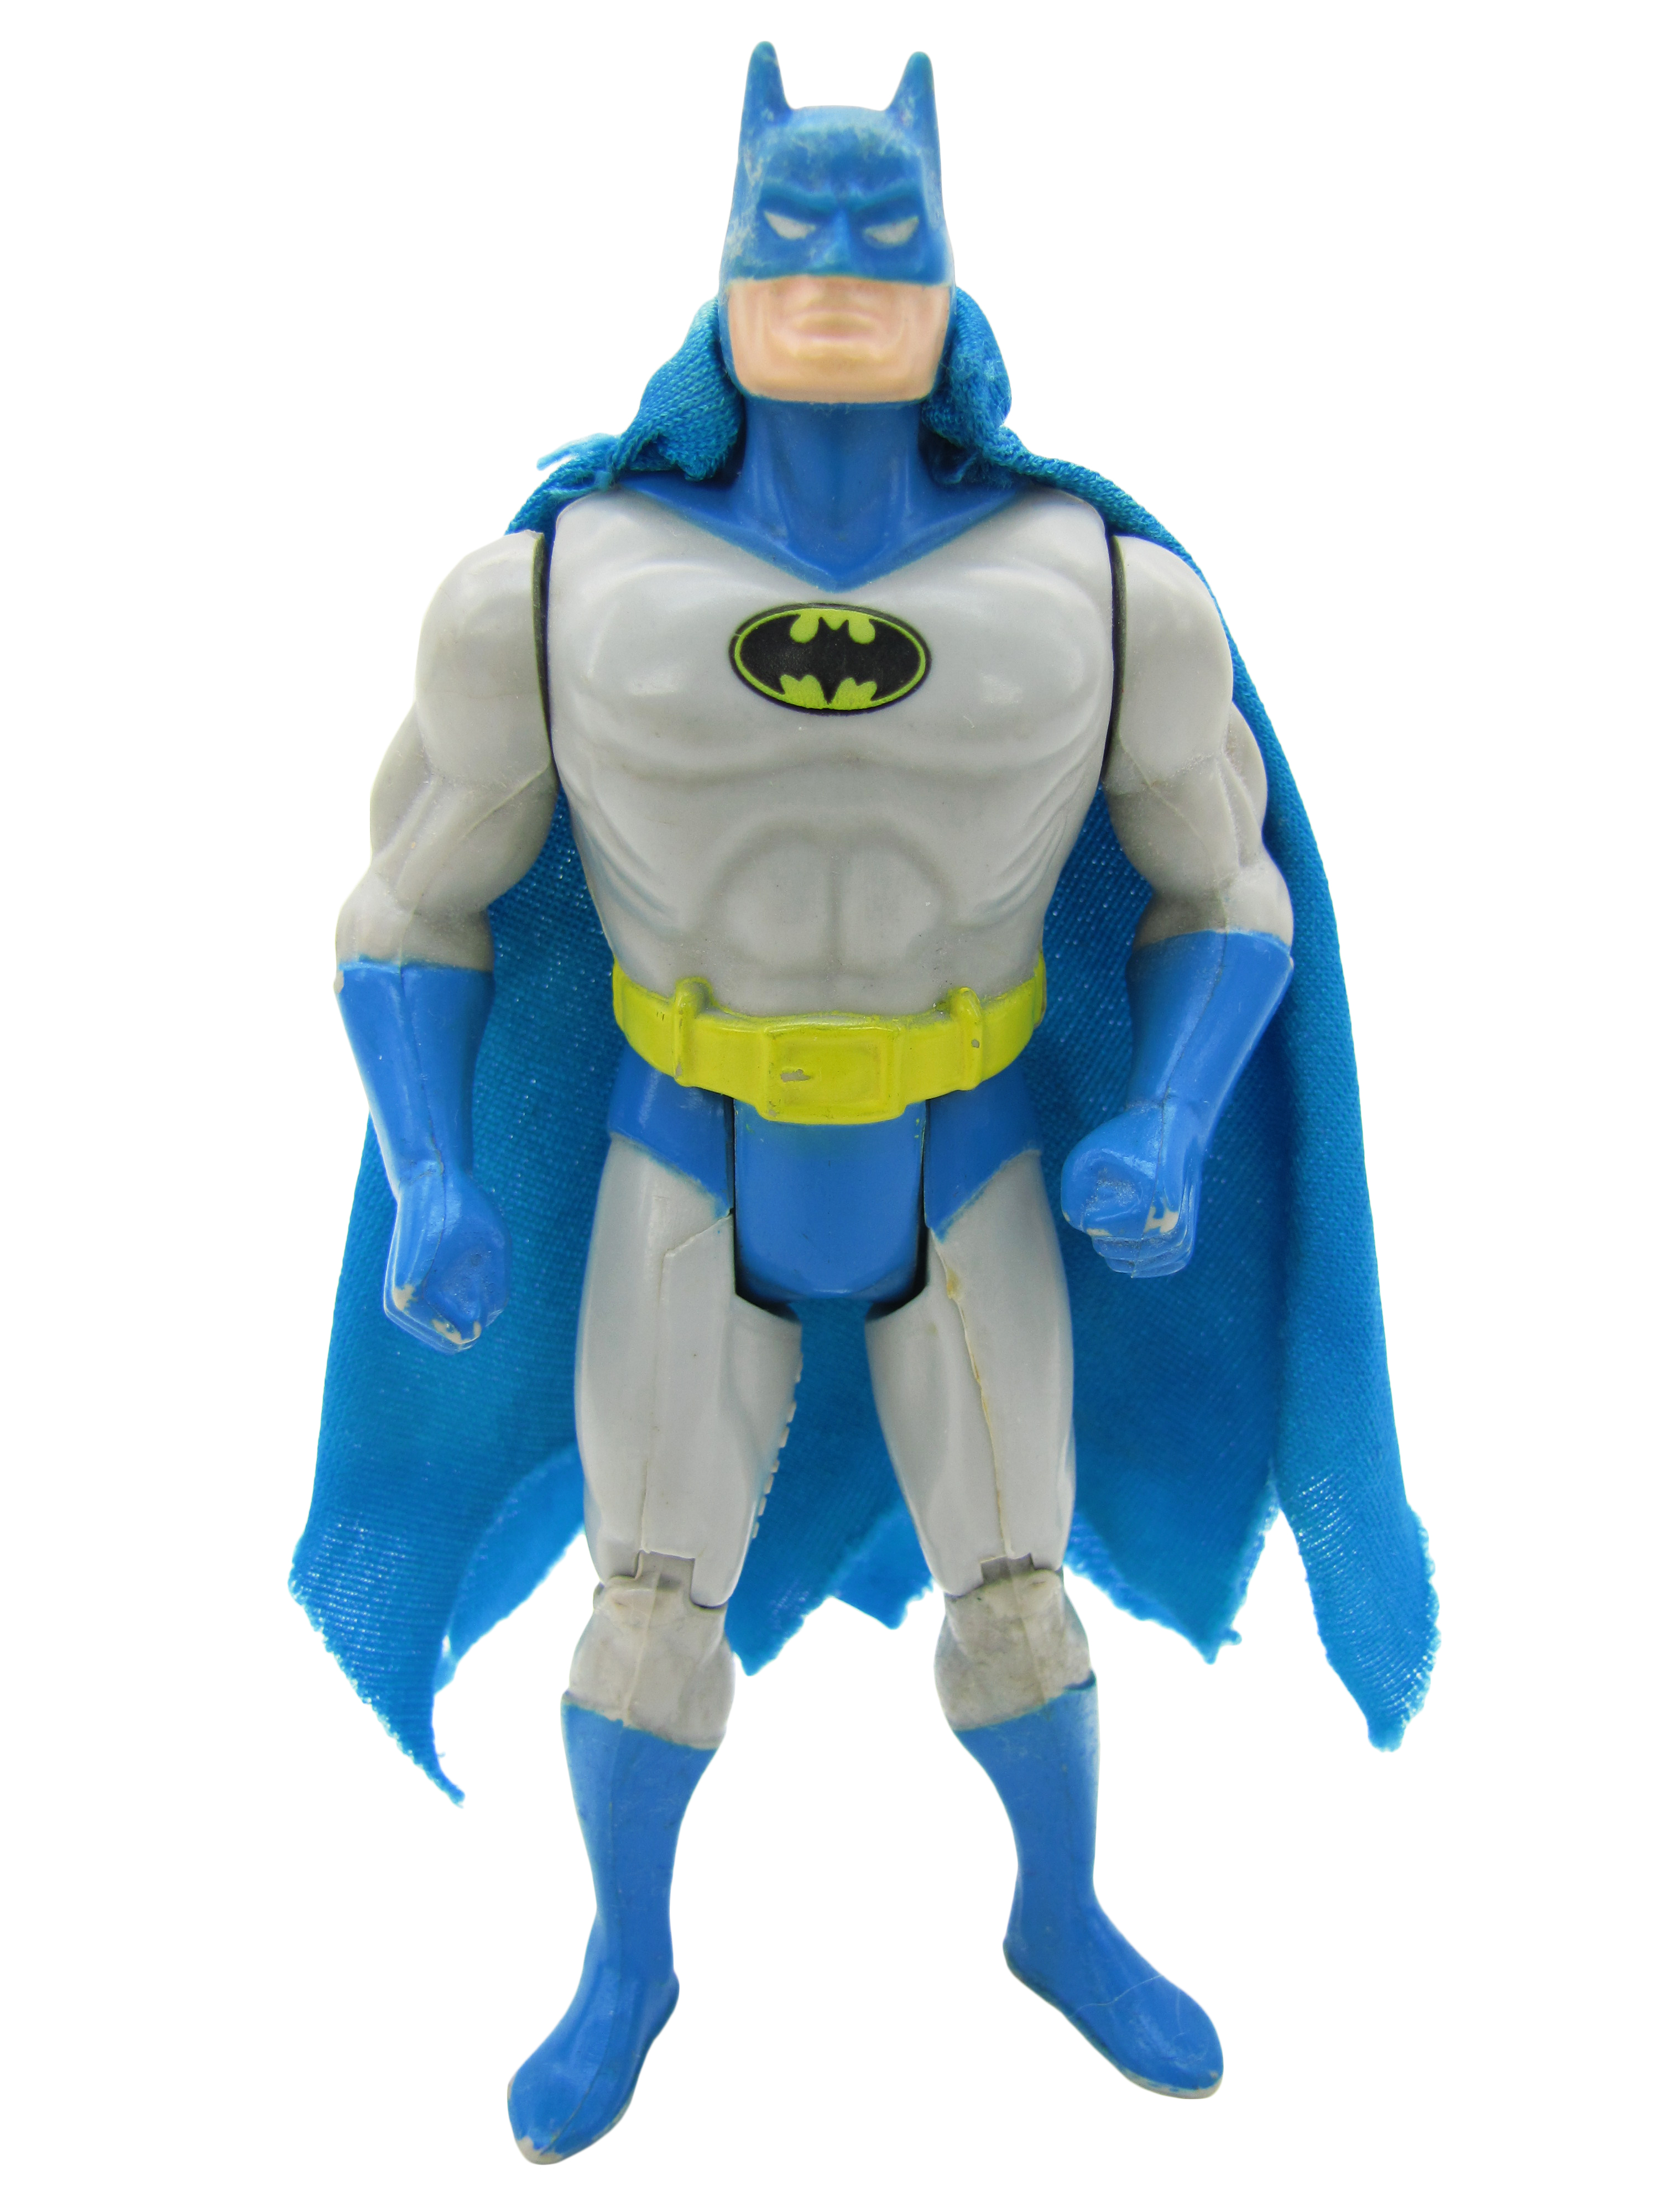 1984 DC Super Powers Collection BATMAN Complete Near Mint Condition